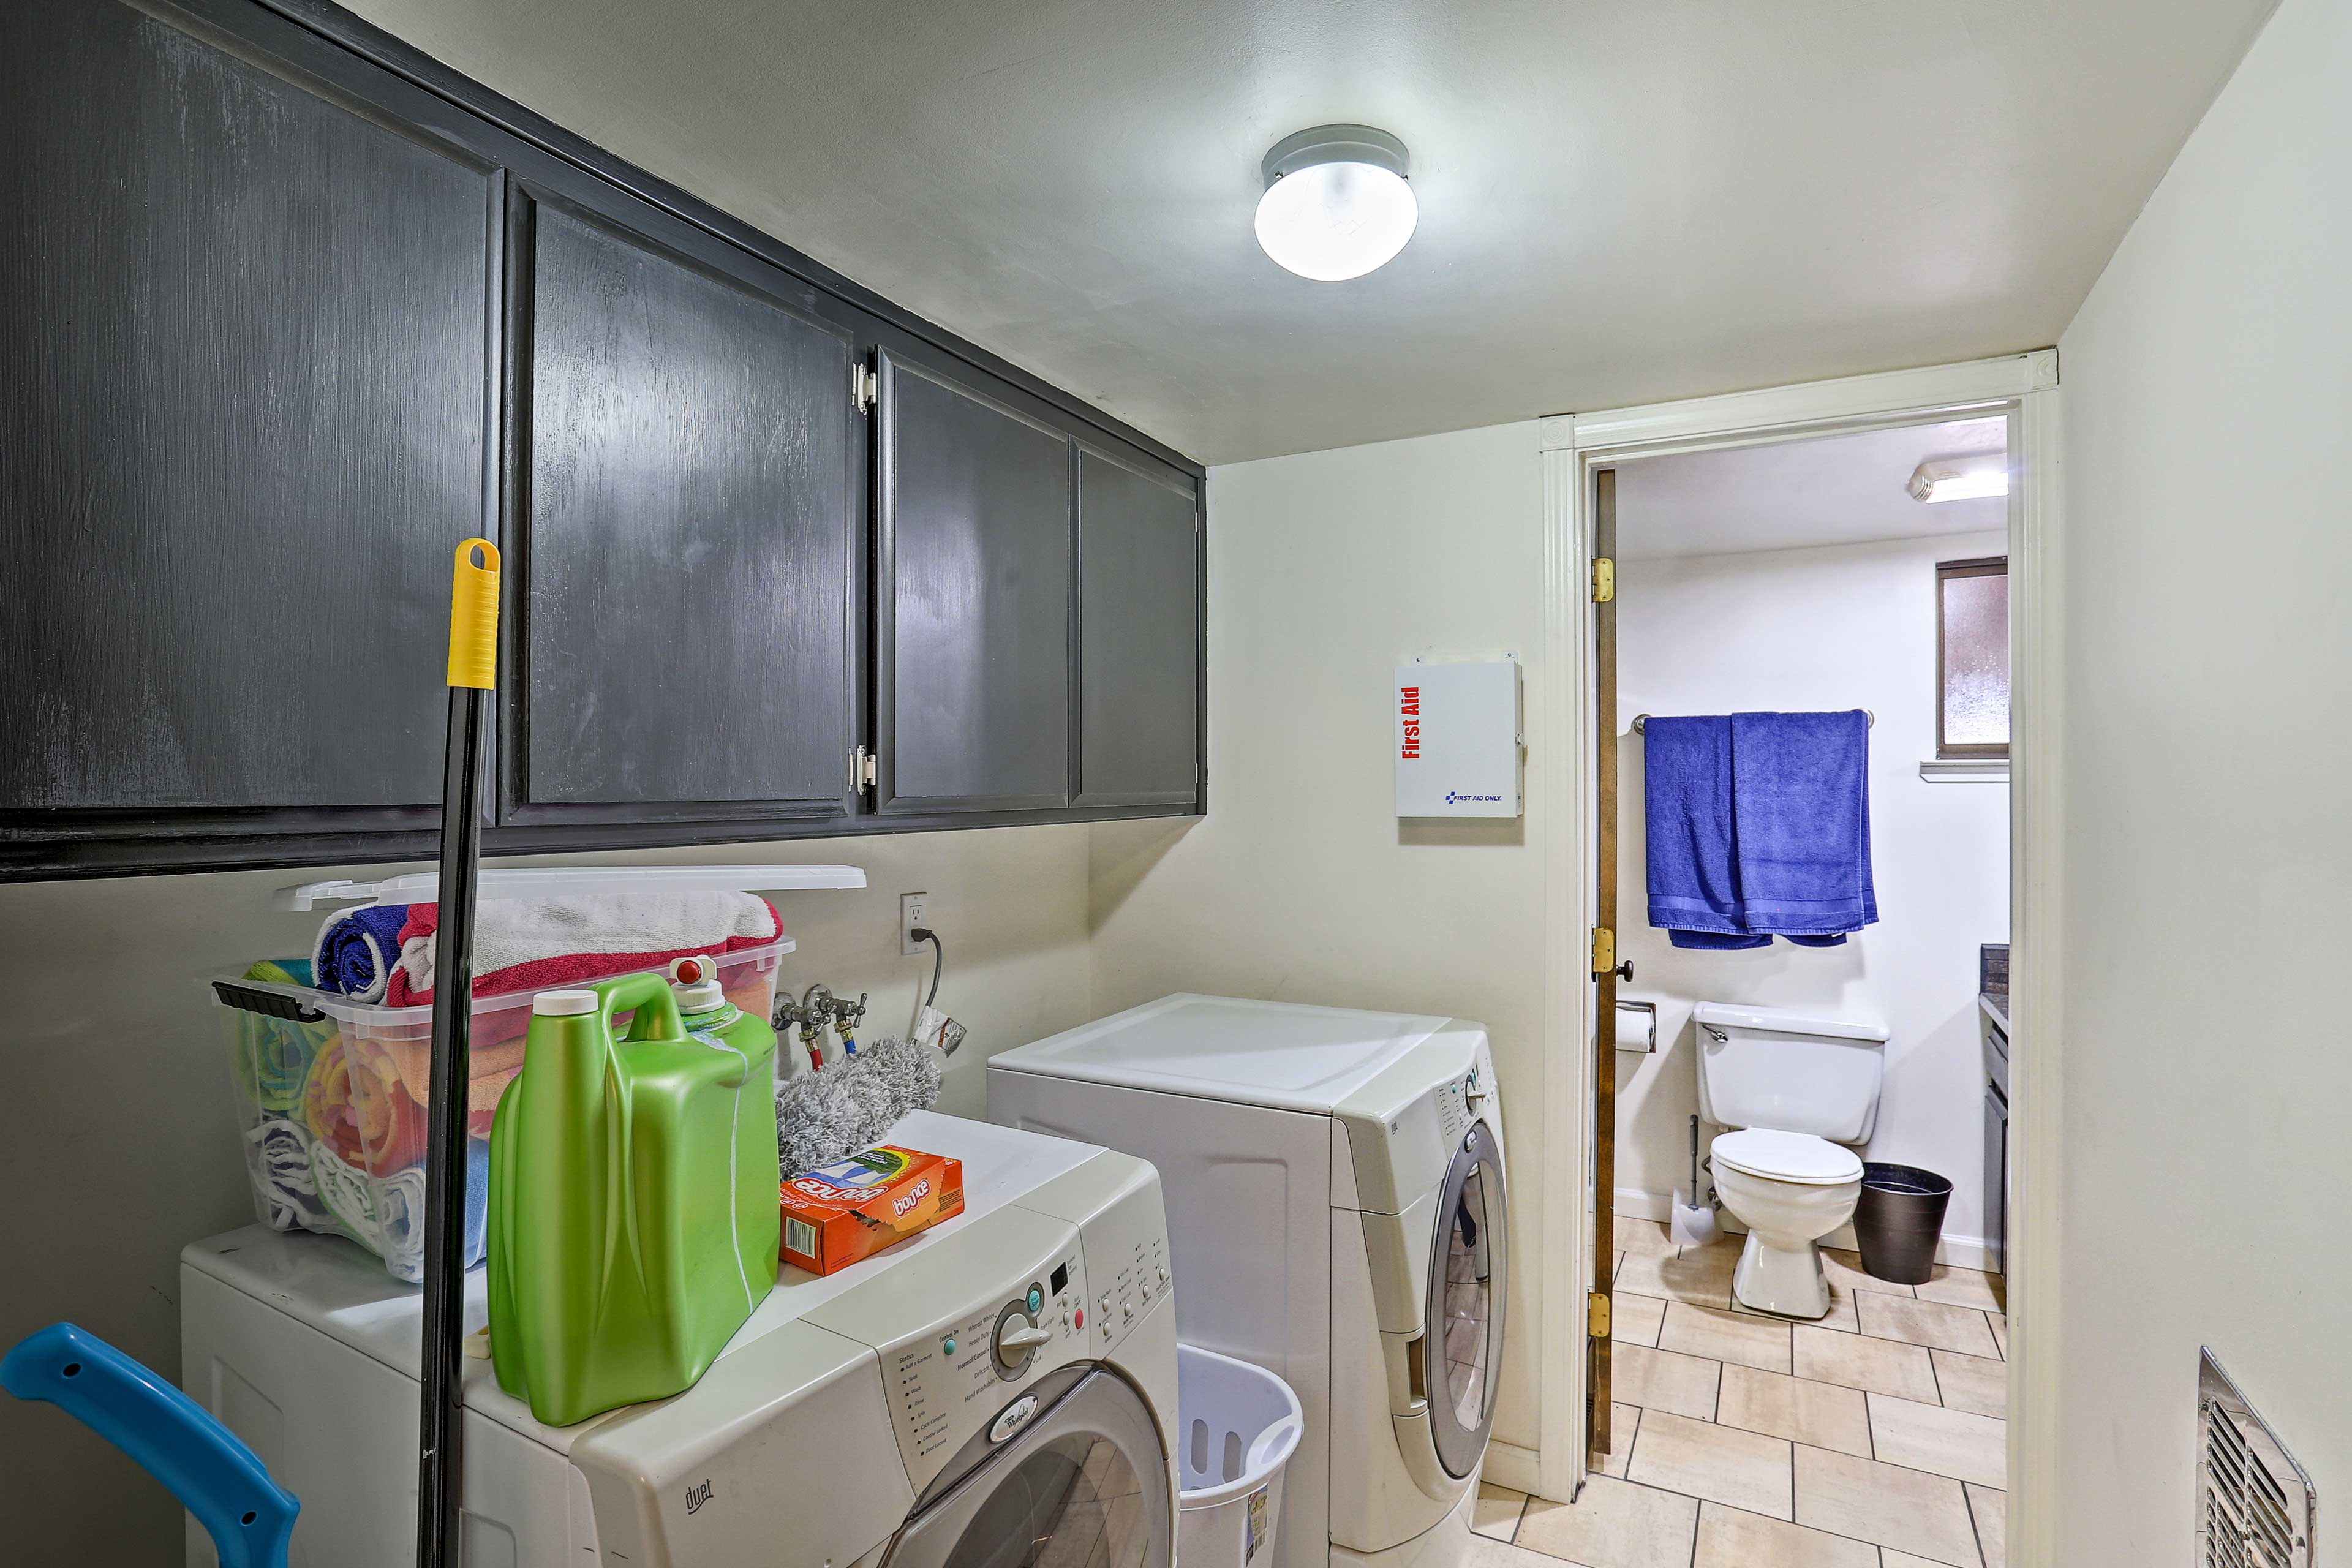 This home has a washer/dryer to keep your clothes fresh.